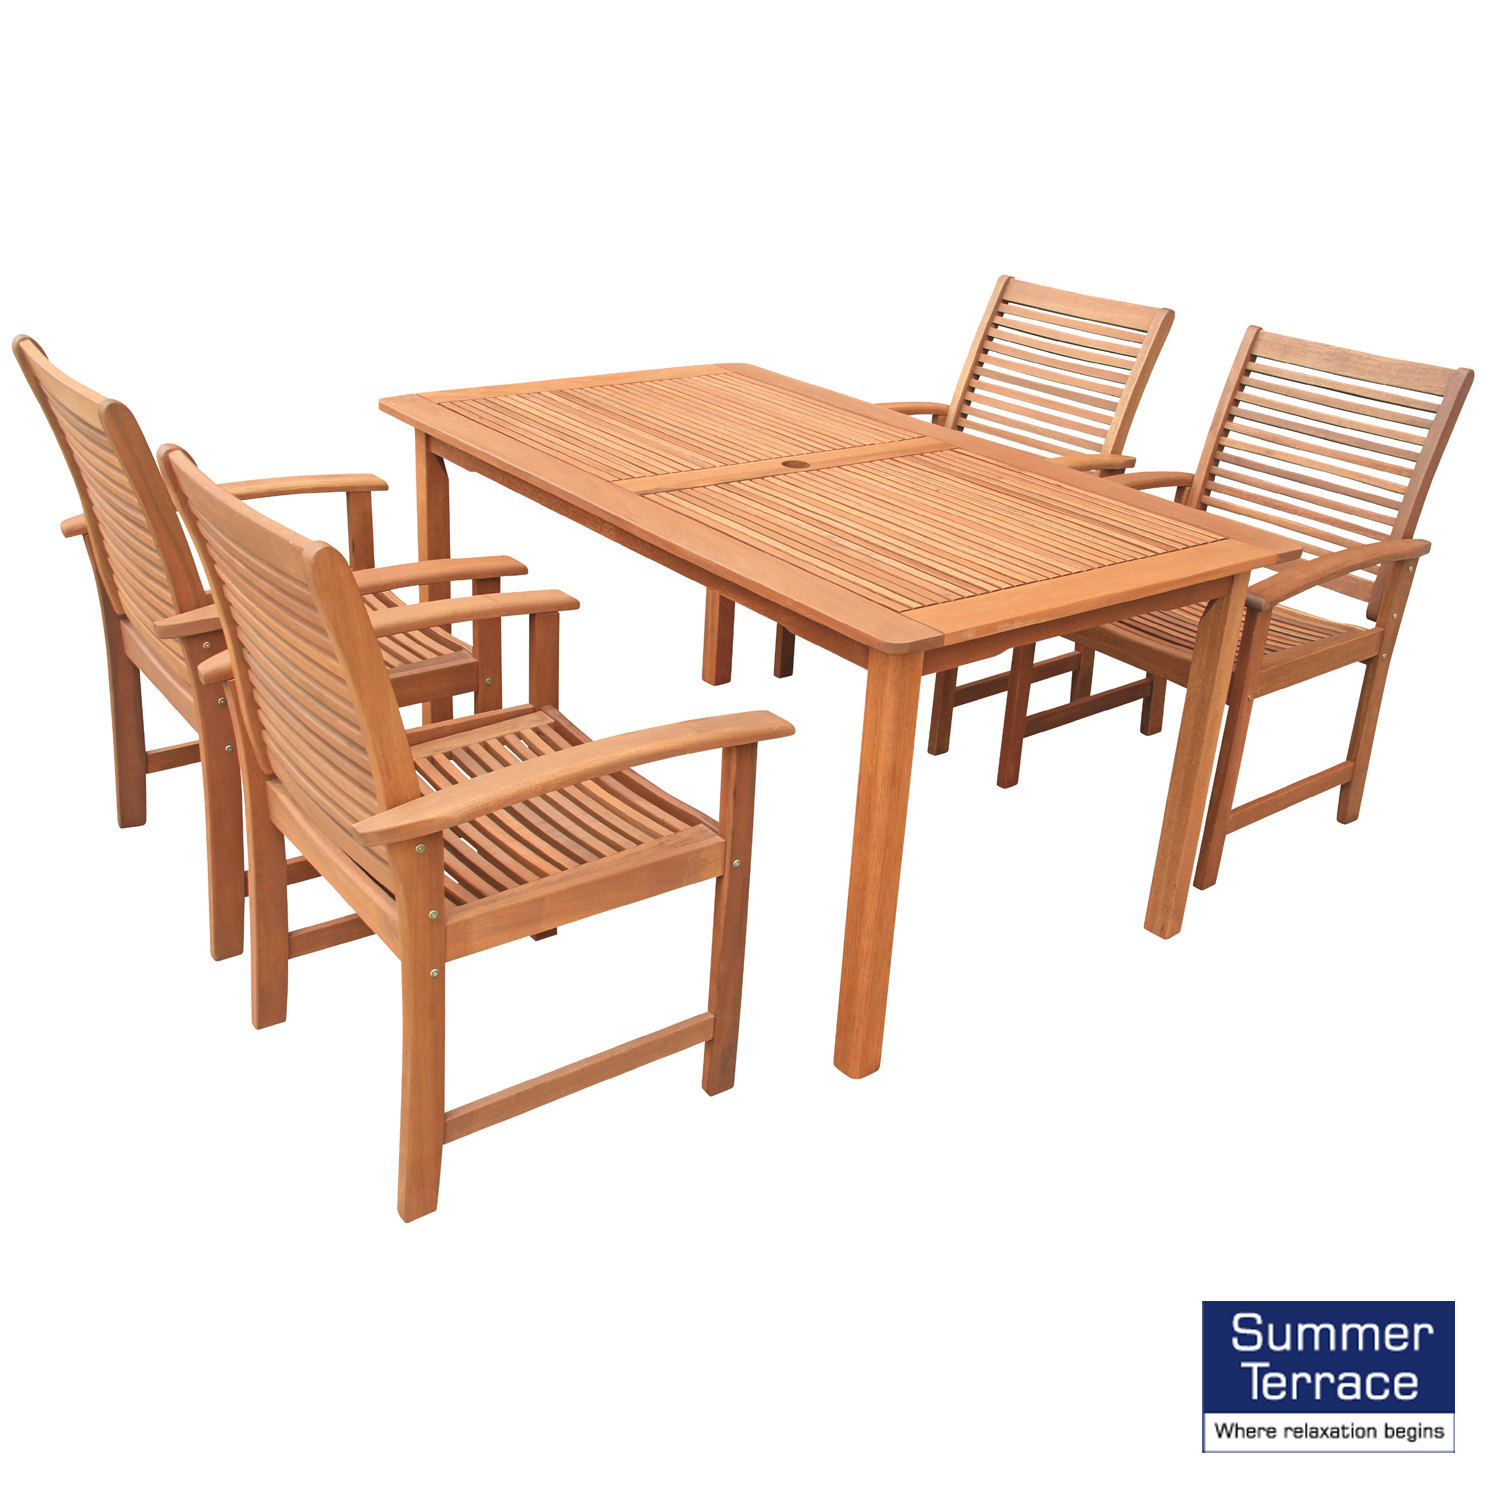 Tornio table with 4 Tornio chairs